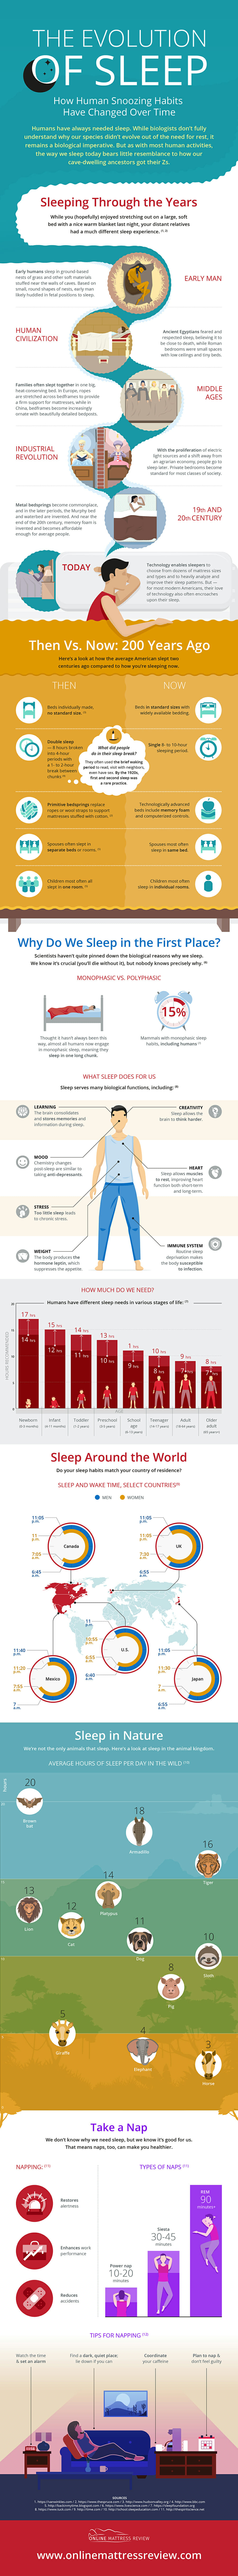 Why and How Much Sleep Do We Need: The Evolution of Sleep - Infographic